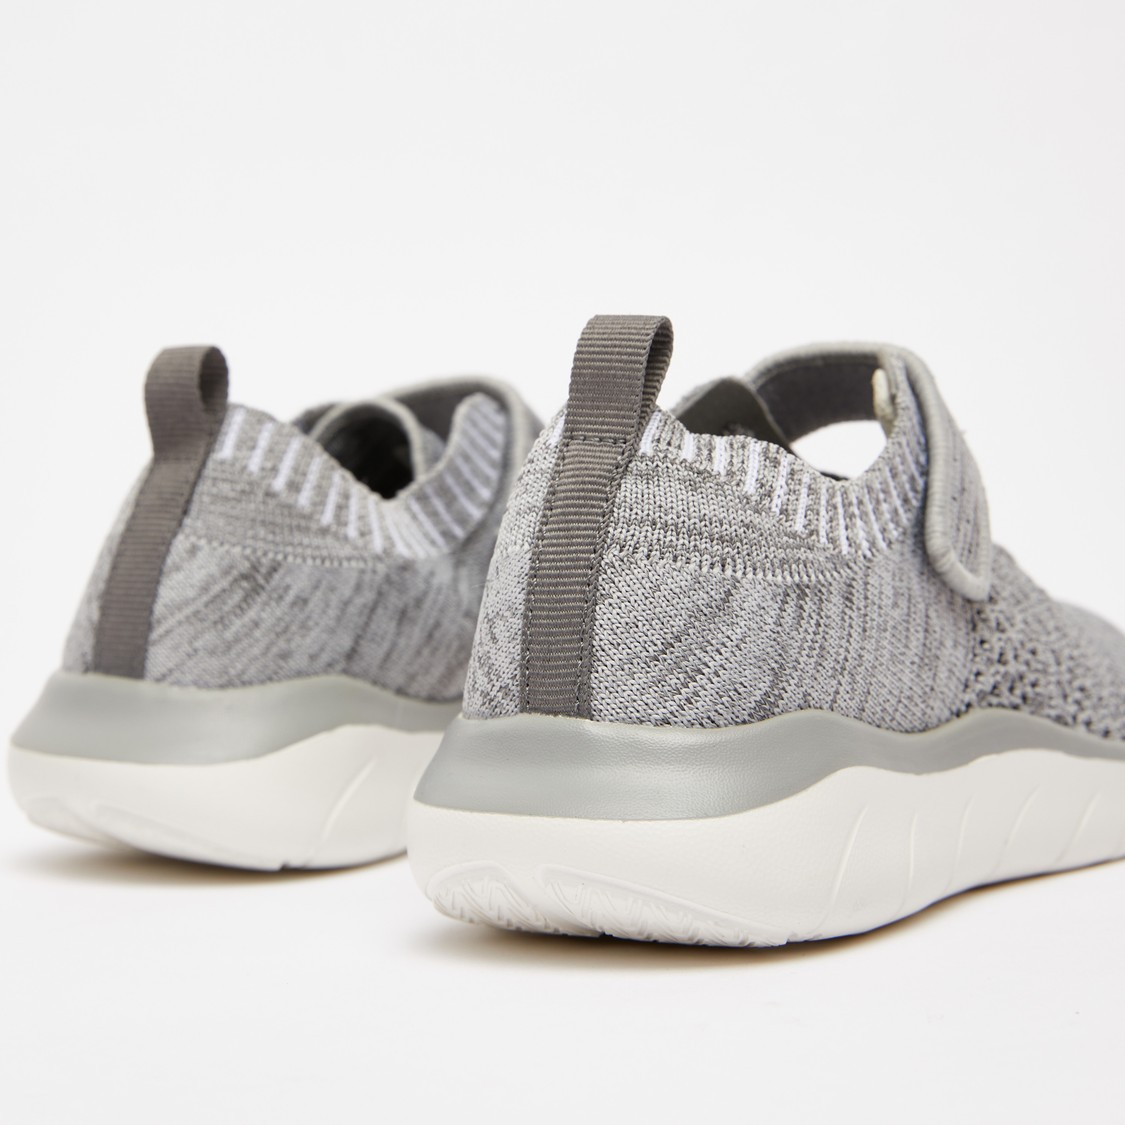 Textured Sports Shoes with Perforation Detail and Pull Tab